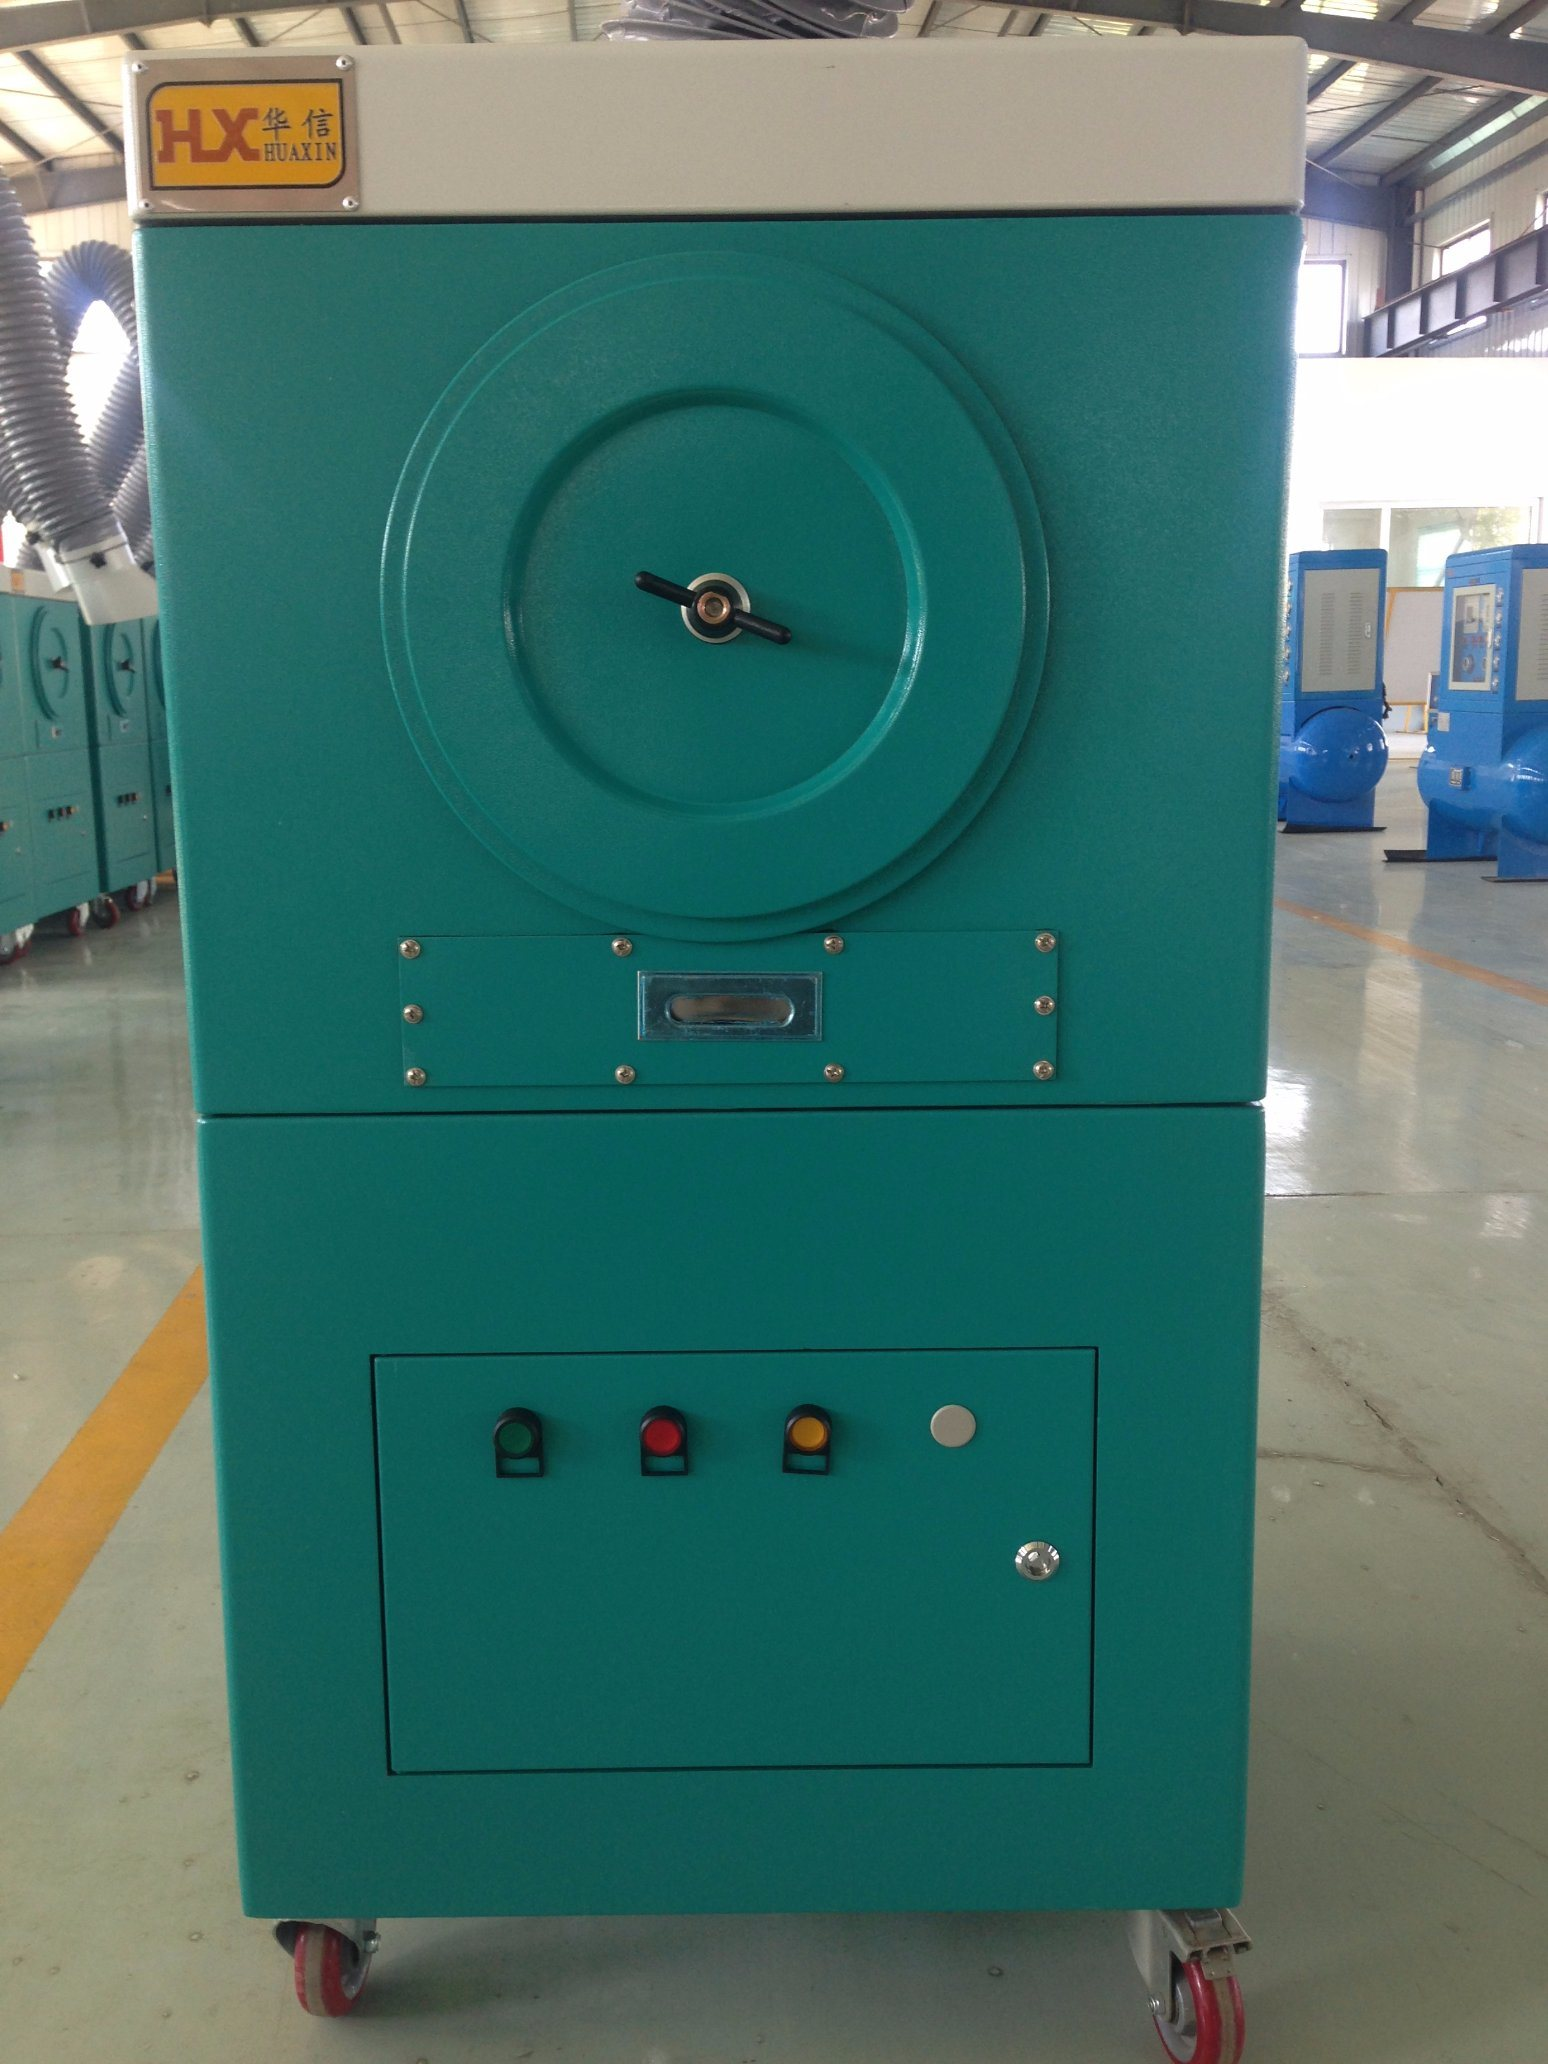 Factory Price Mobile Welding Fume Extractor/Portable Dust Collector Industrial/Smoke Tracker